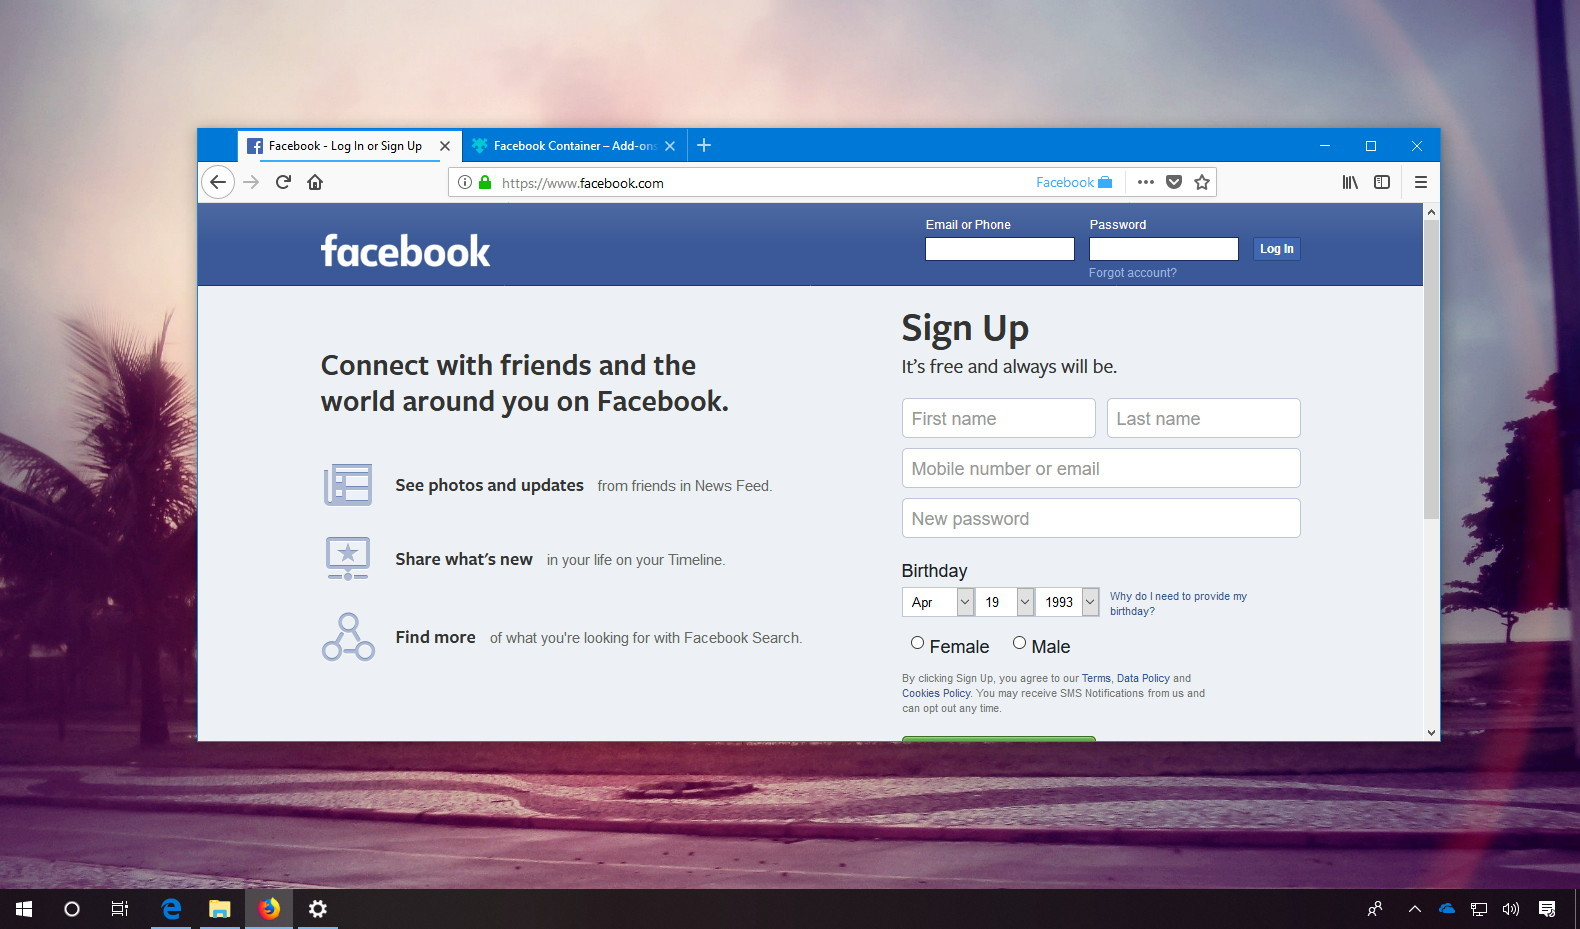 Facebook Container extension for Firefox